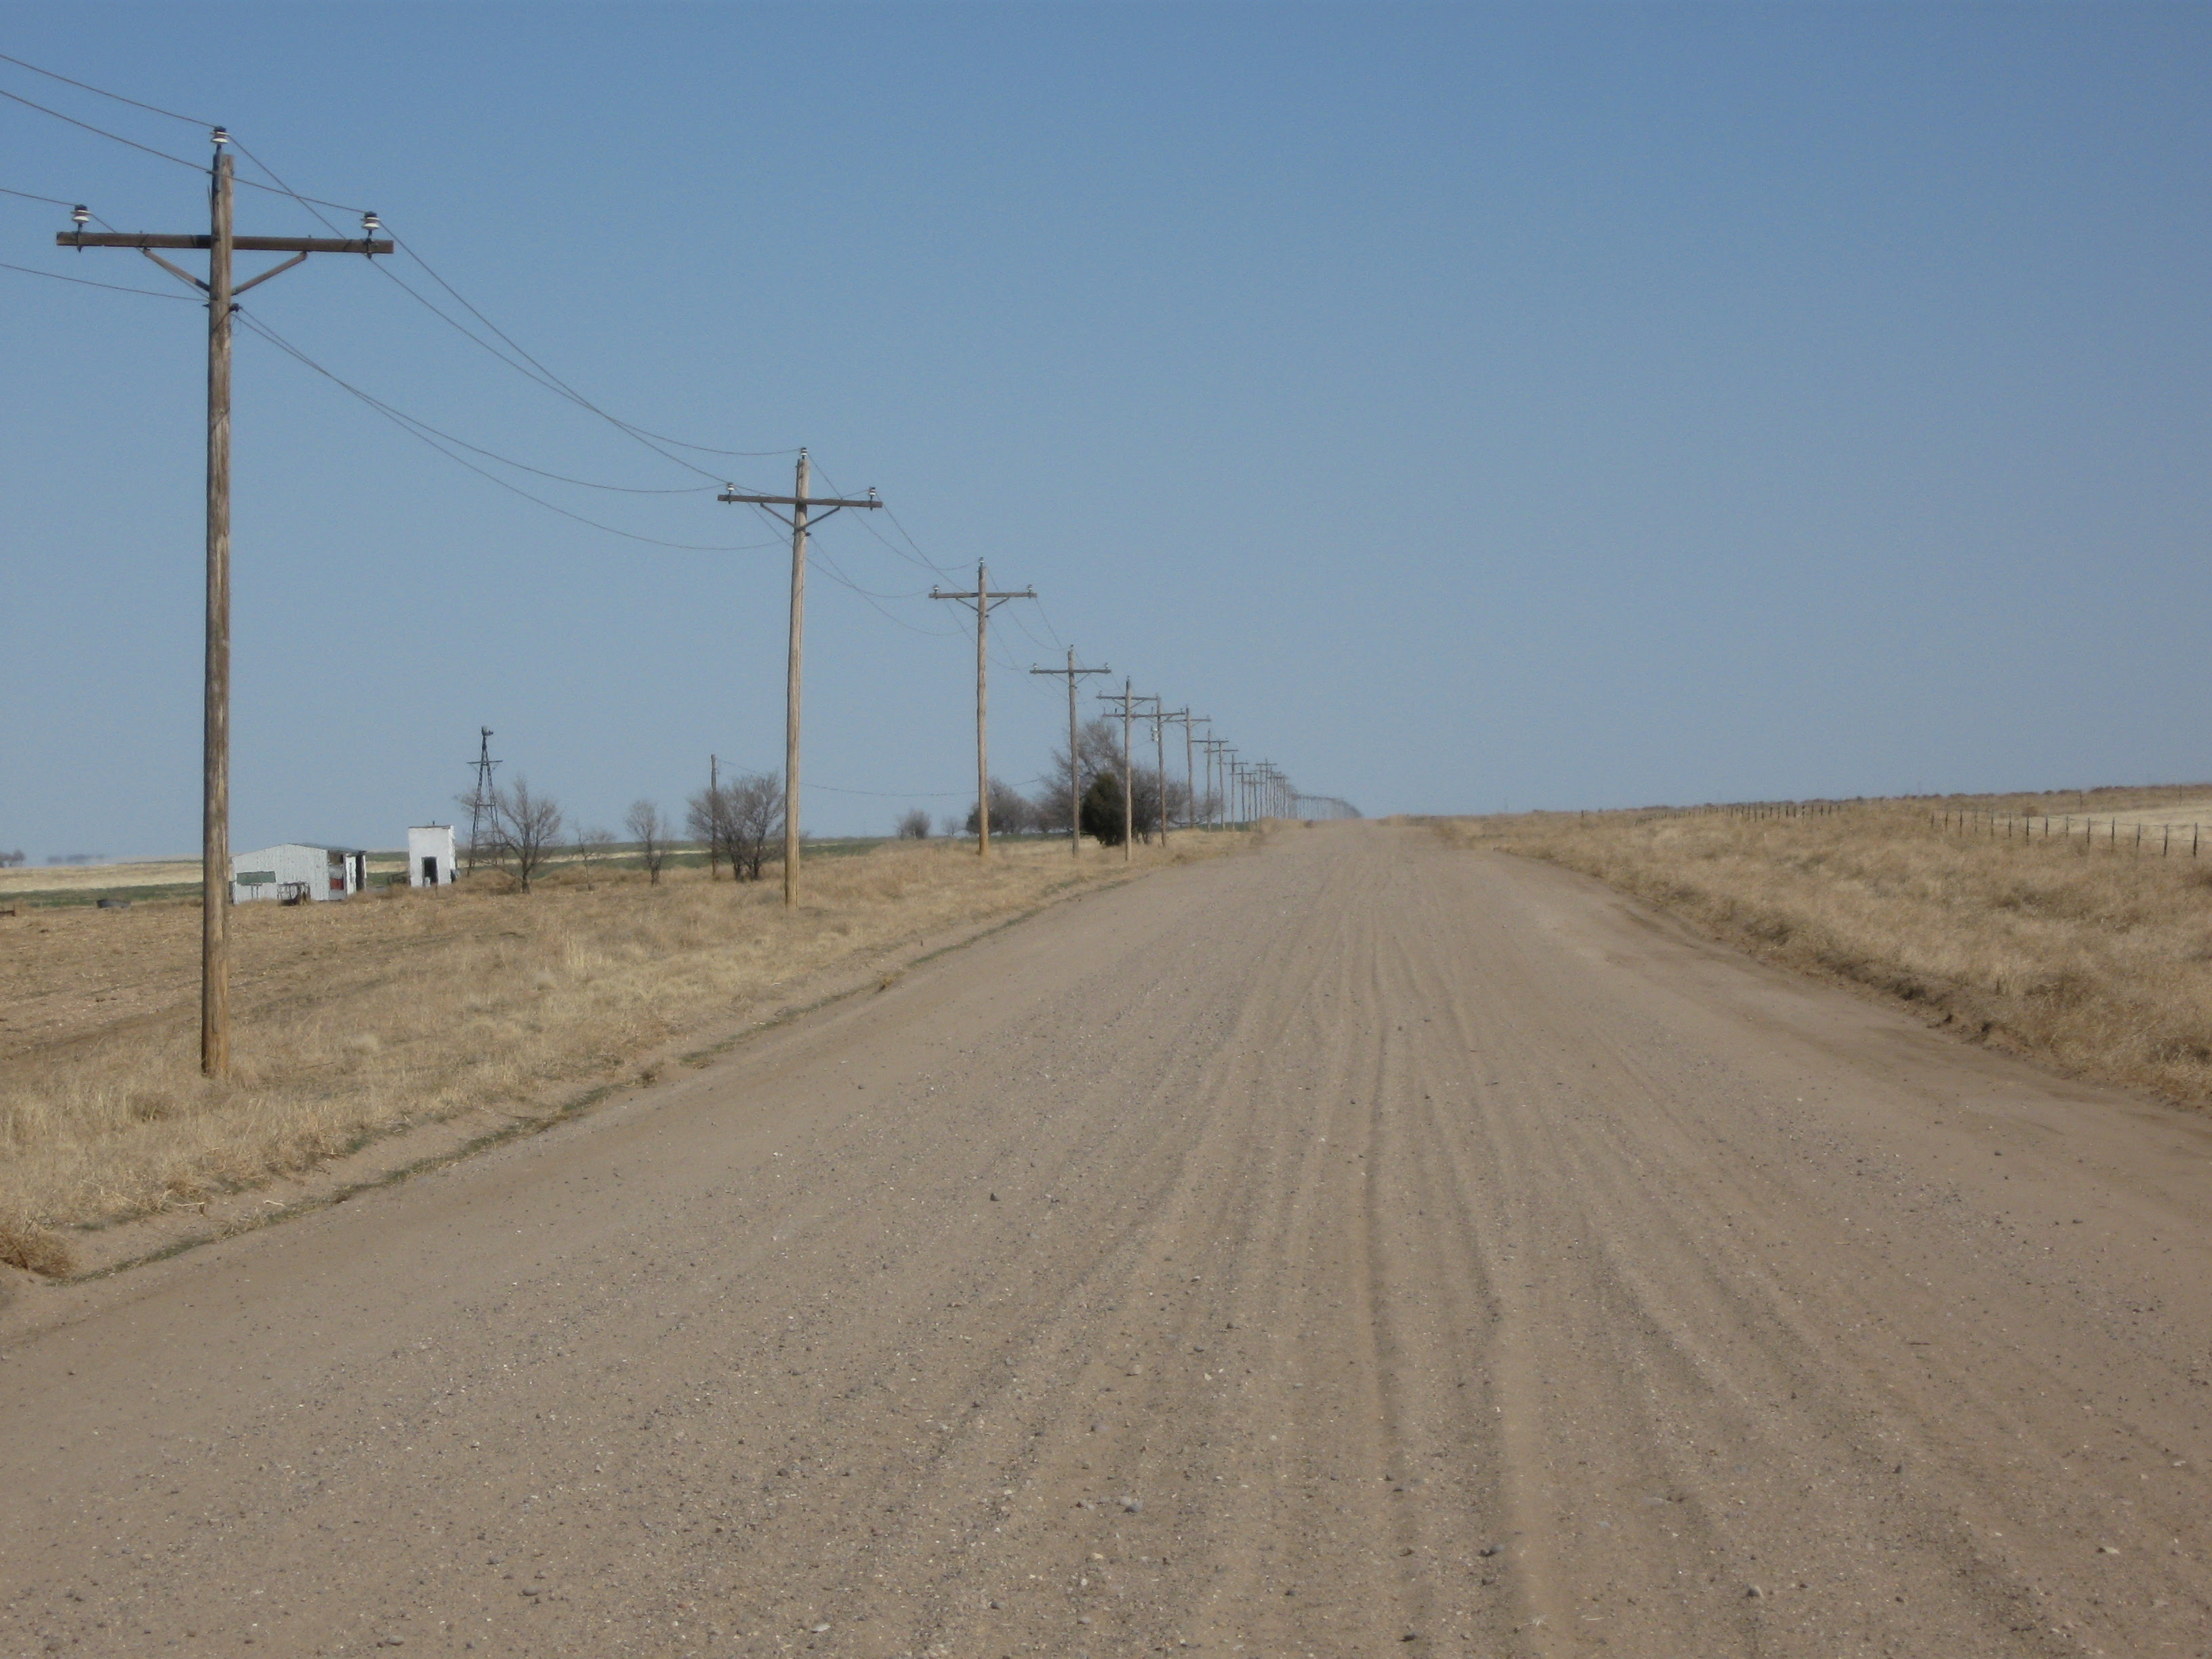 http://upload.wikimedia.org/wikipedia/commons/8/89/Colorado_High_Plains_Dirt_Road.JPG